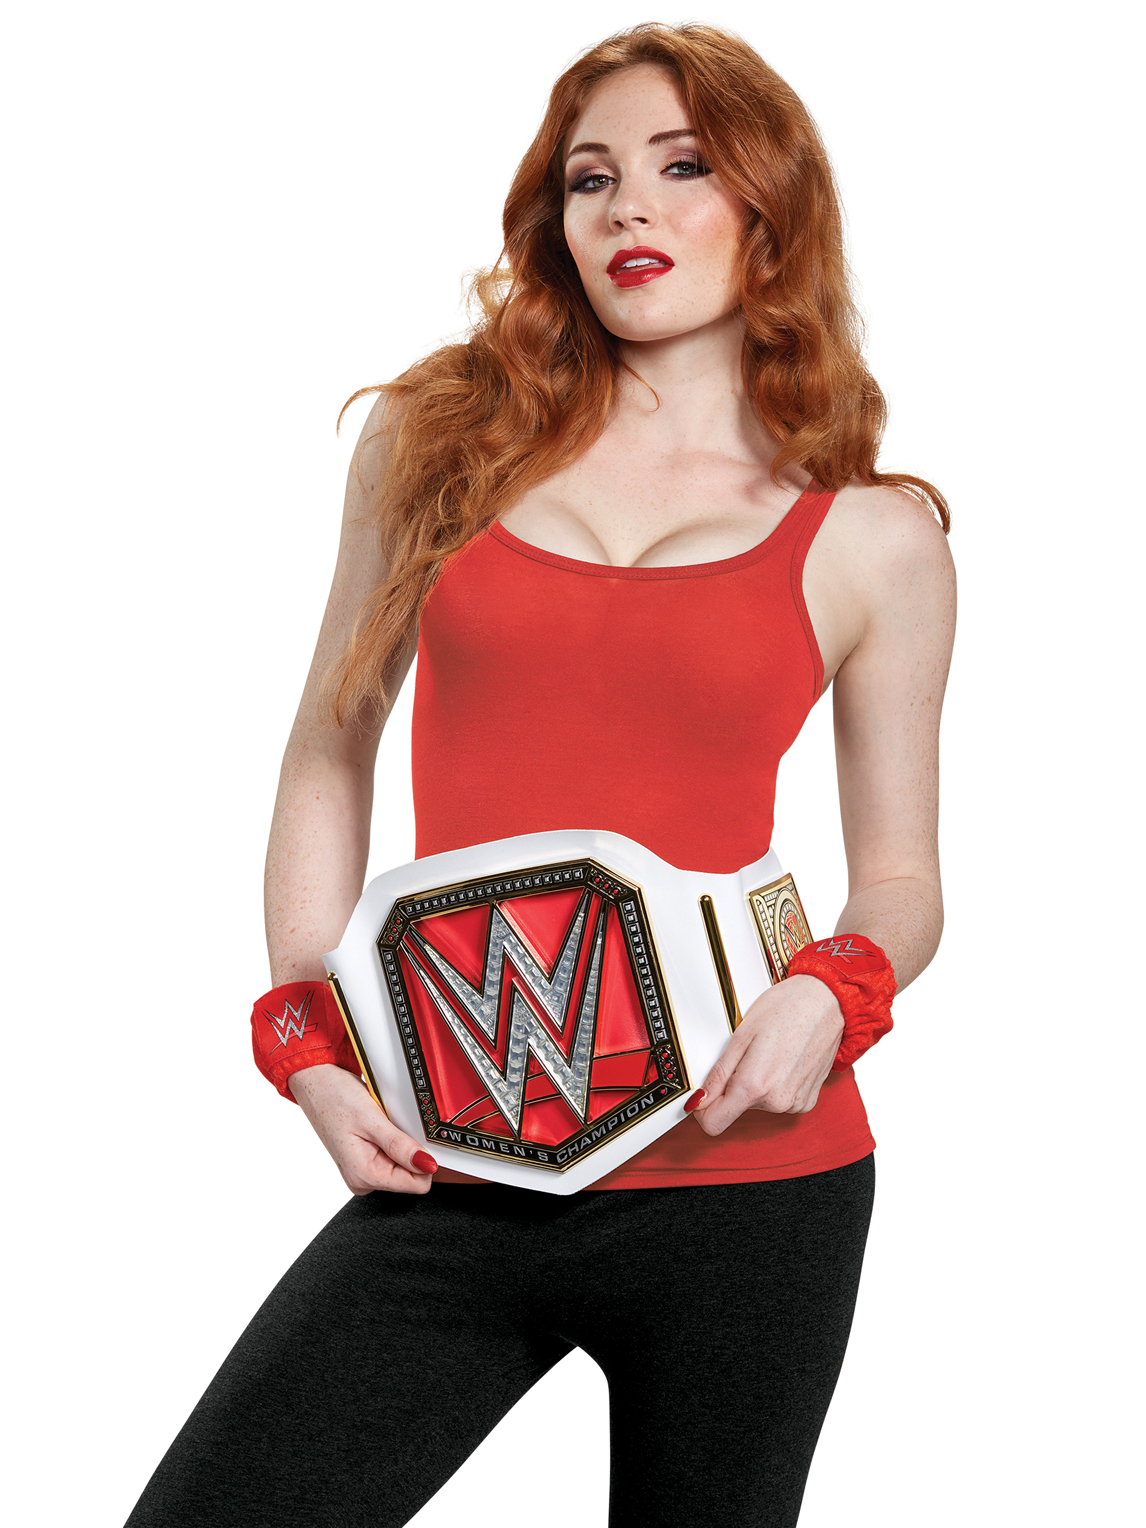 Disguise Inc Wwe Womenu0027s Ch&ion Adult Costume Kit One-Size  sc 1 st  Nextag & Wwe wrestler costume | Compare Prices at Nextag